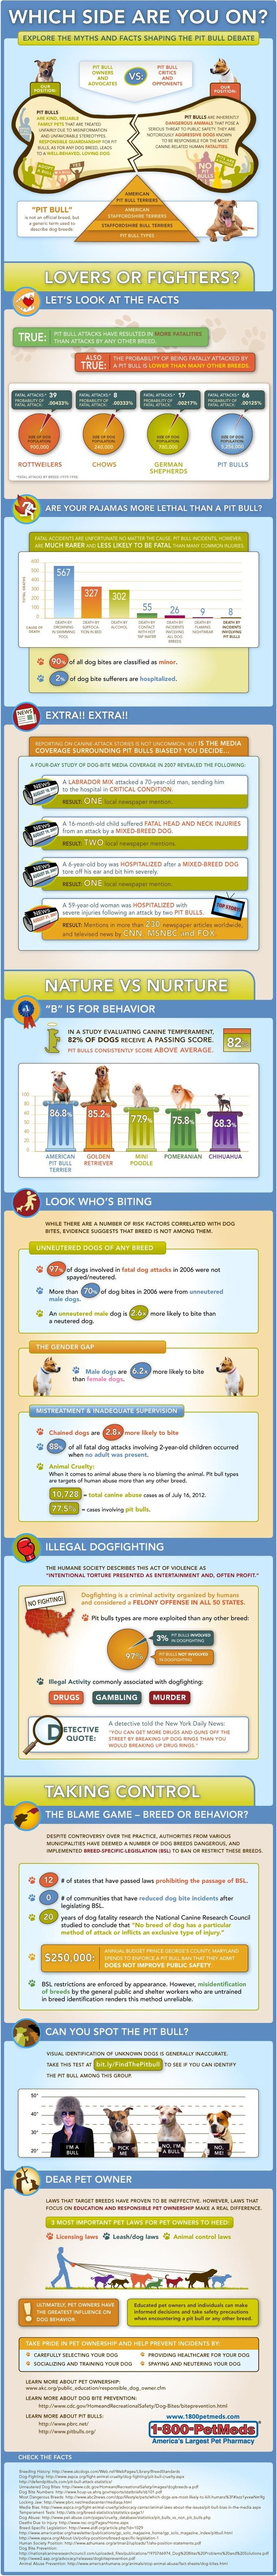 Pit Bull Myths and Facts Infographic